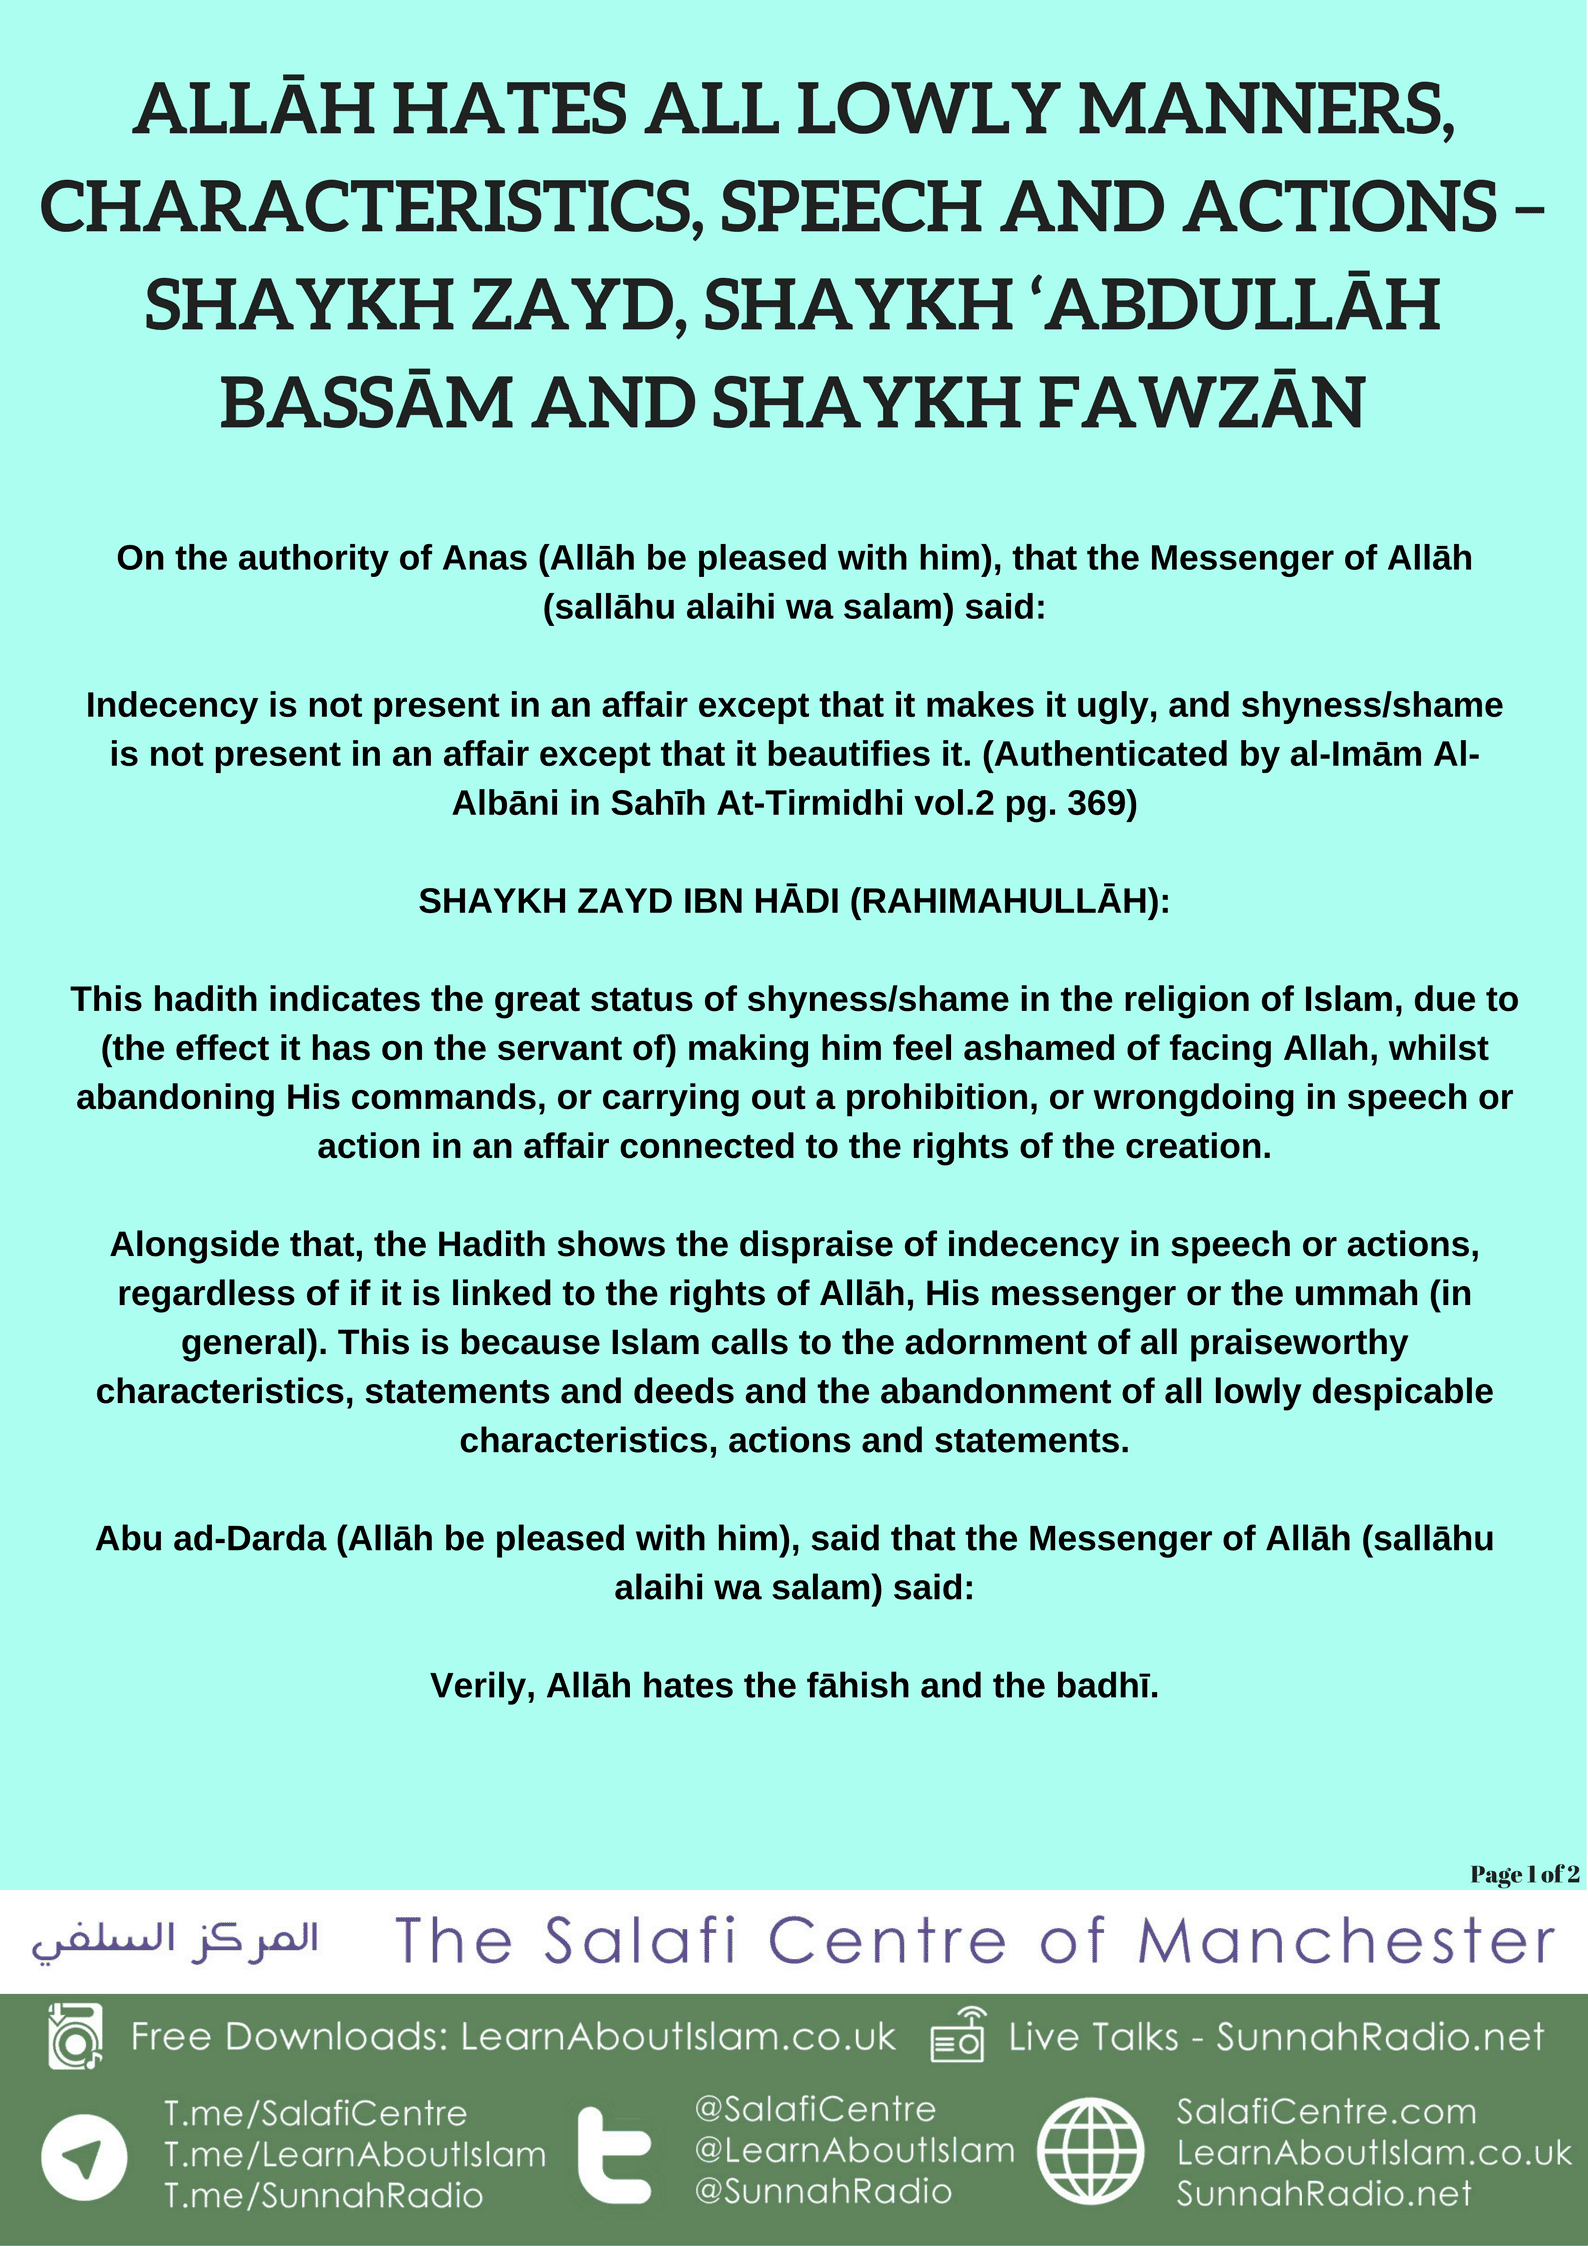 Allāh Hates all Lowly Manners, Characteristics, Speech and Actions – Shaykh Zayd, Shaykh 'Abdullāh Bassām and Shaykh Fawzān